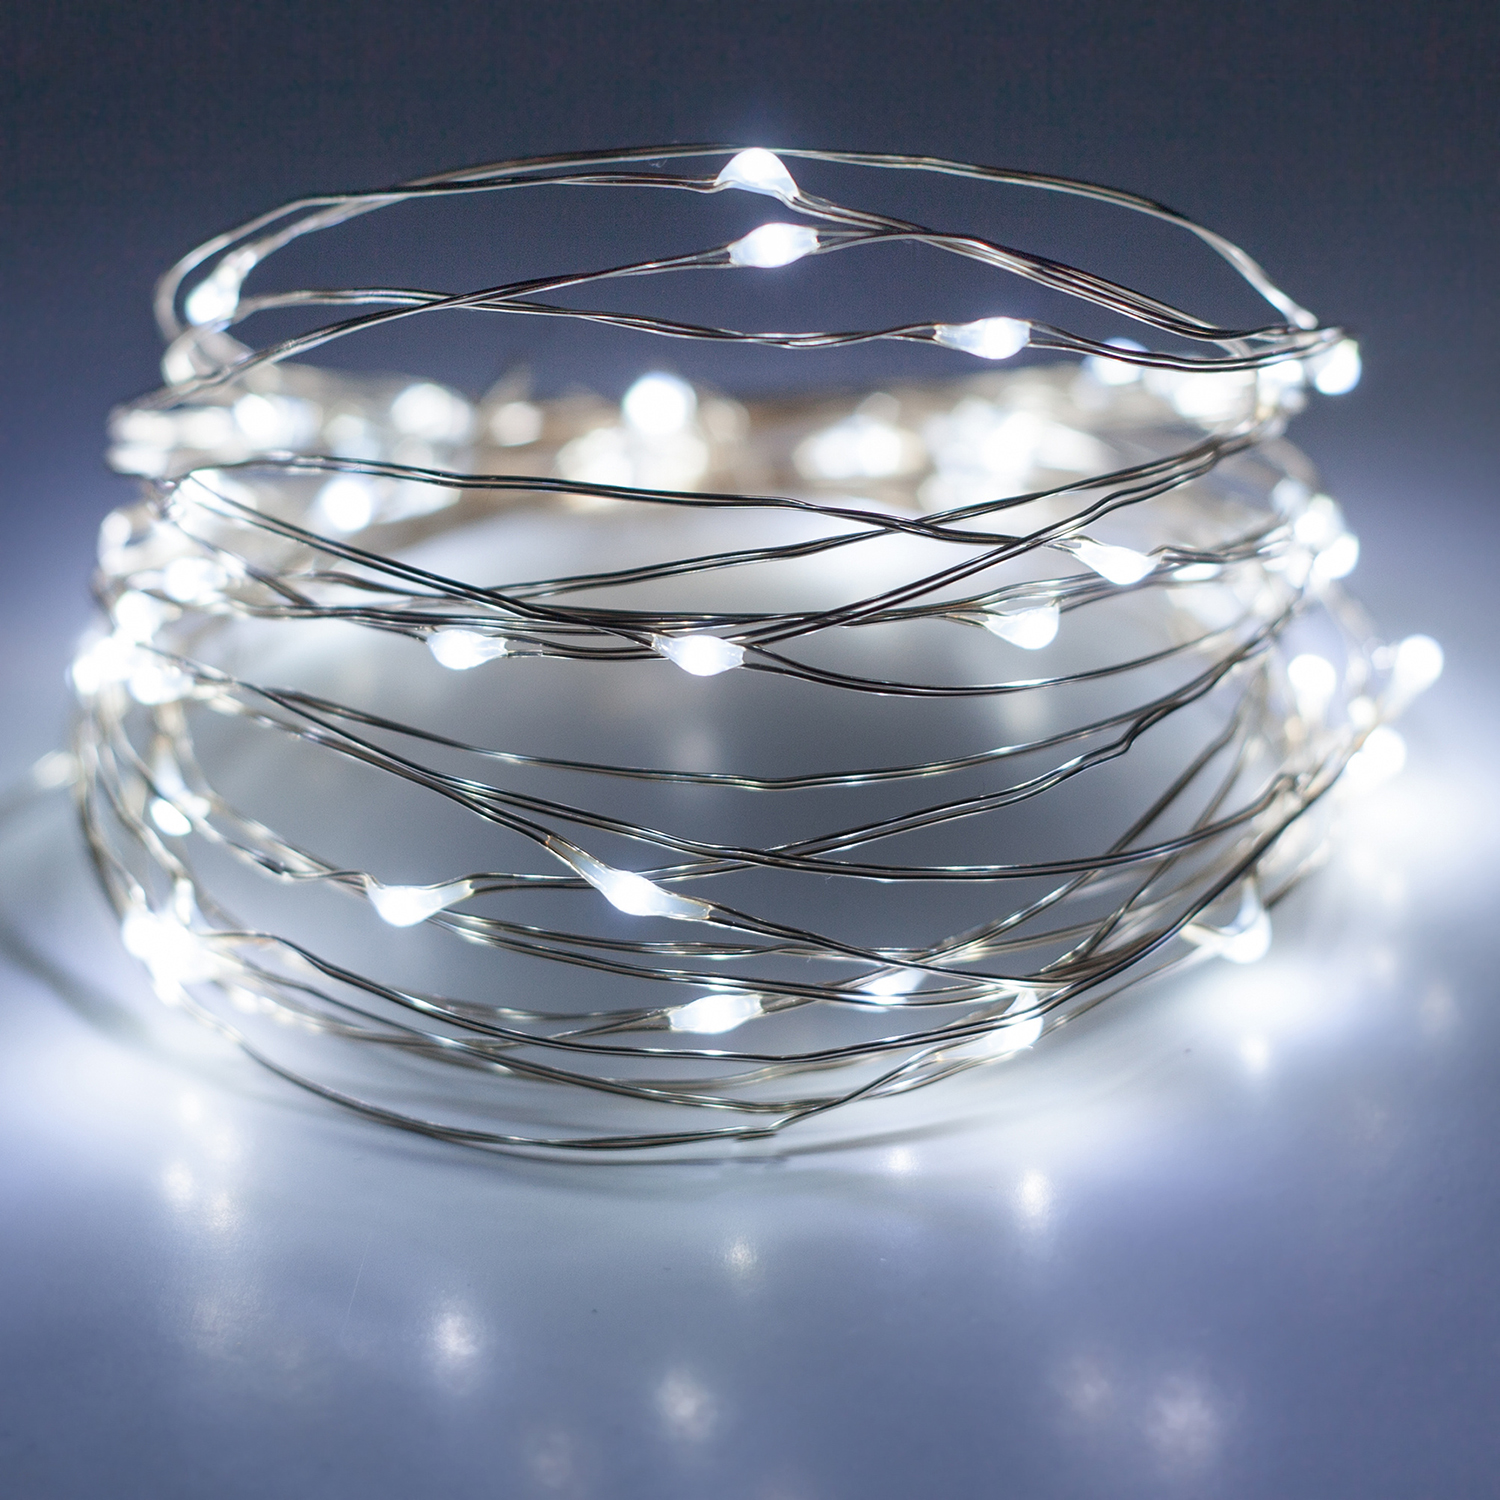 Unido Box 6 Pack Mini String Lights 20 LED, Cool White, 7'ft/2m Battery Waterproof Wedding Holiday Craft Decor